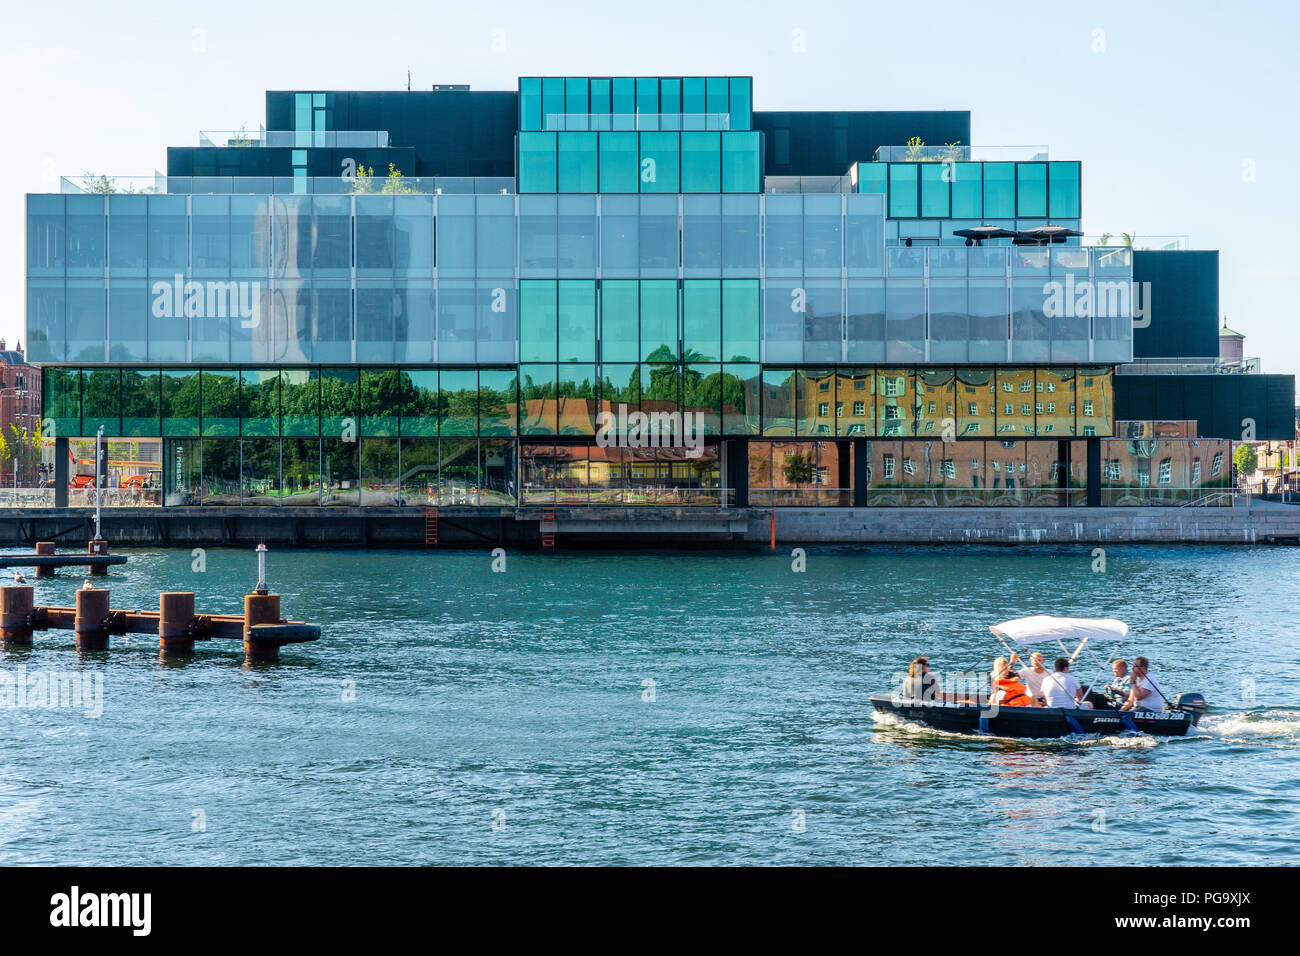 The Blox building from 2018 by the Copenhagen waterfront, domicile for DAC, Dansk Arkitektur Center. Leisure boat in front. - Stock Image